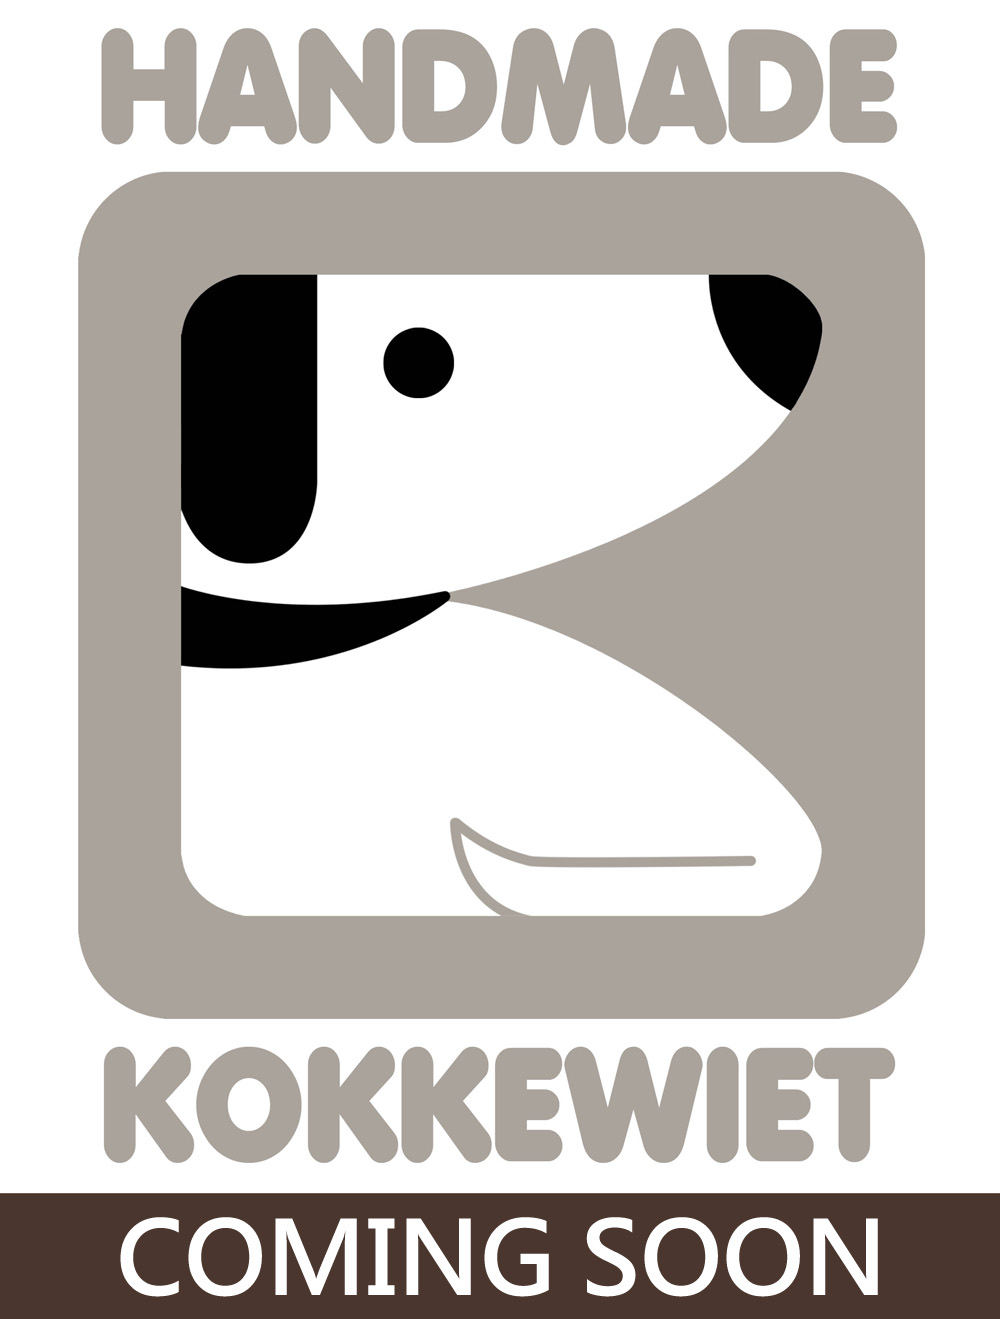 Kokkewiet Handmade Coming Soon